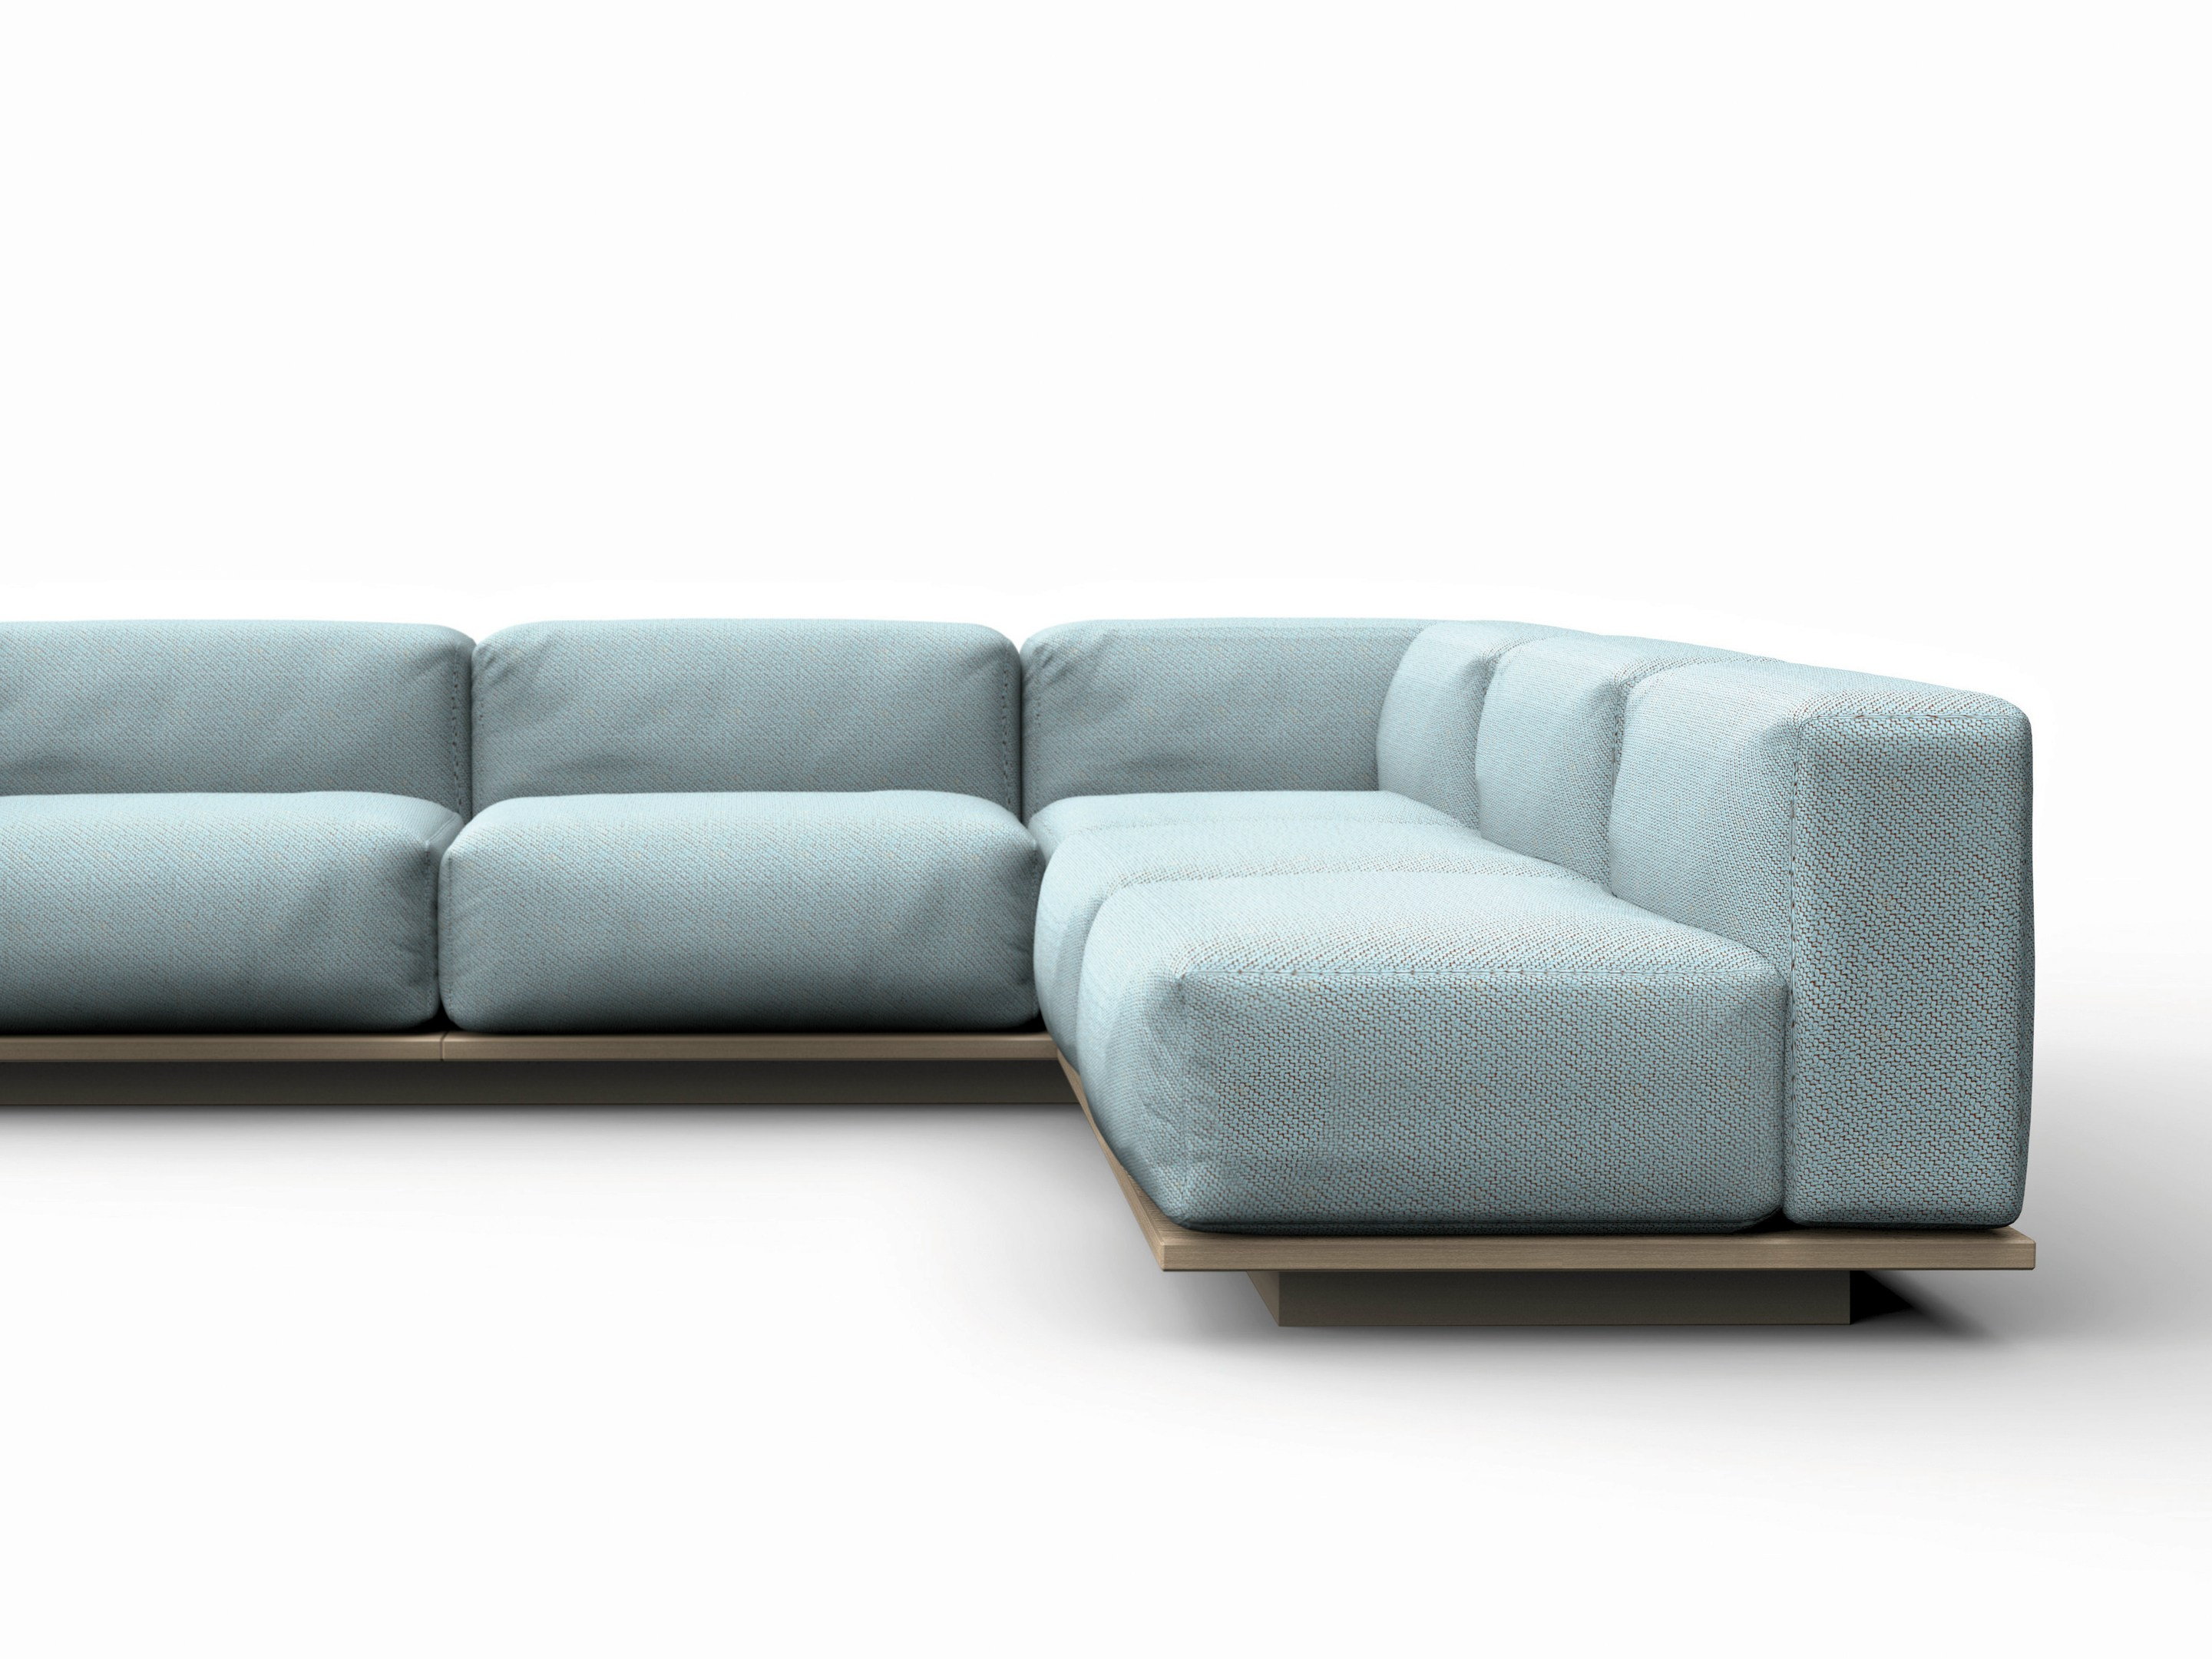 Canap modulable en tissu meet by offecct design robin for Canape modulable